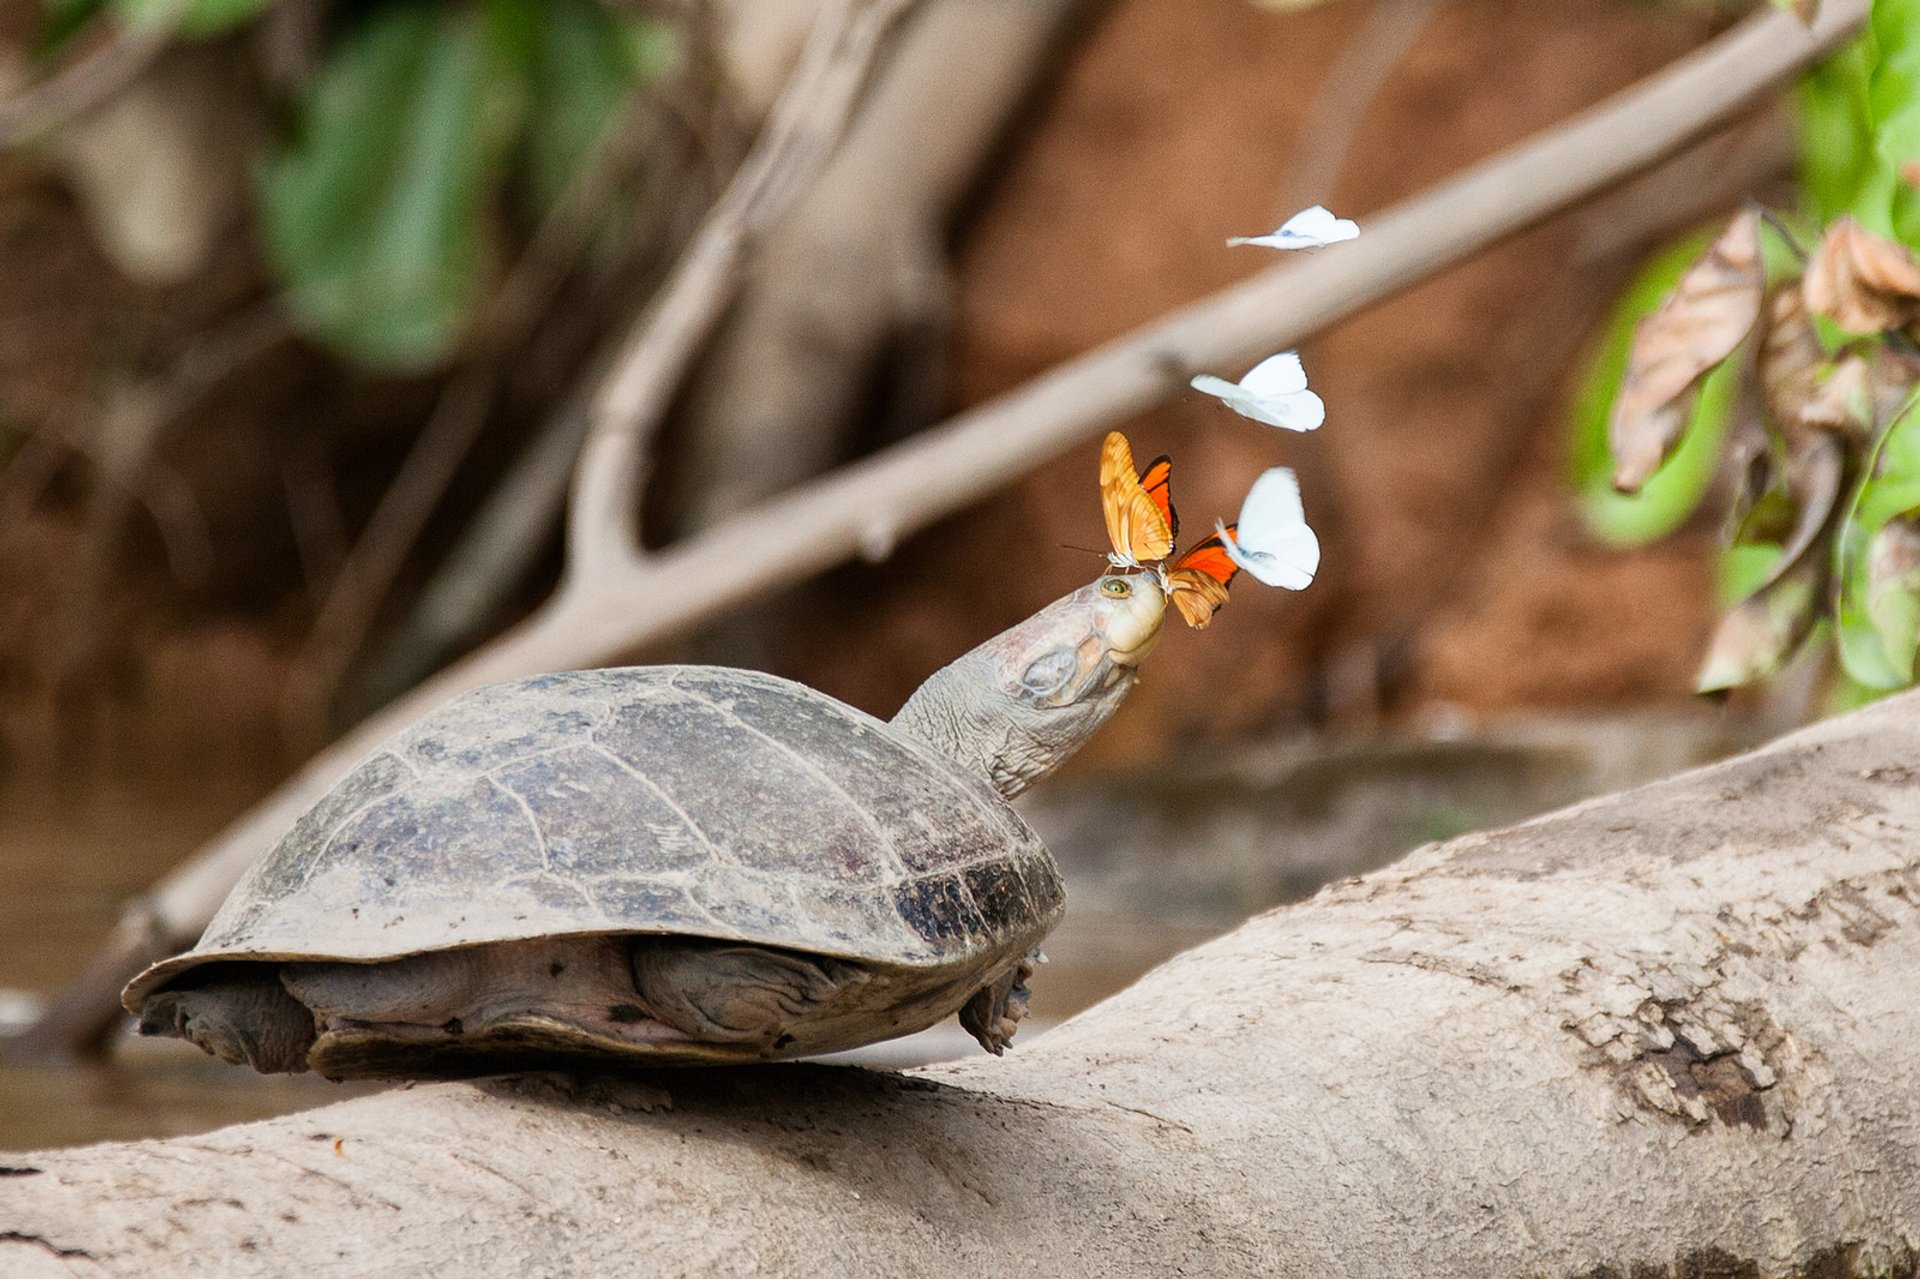 Butterflies Drinking Turtle Tears in Peru 2019 - Best Time